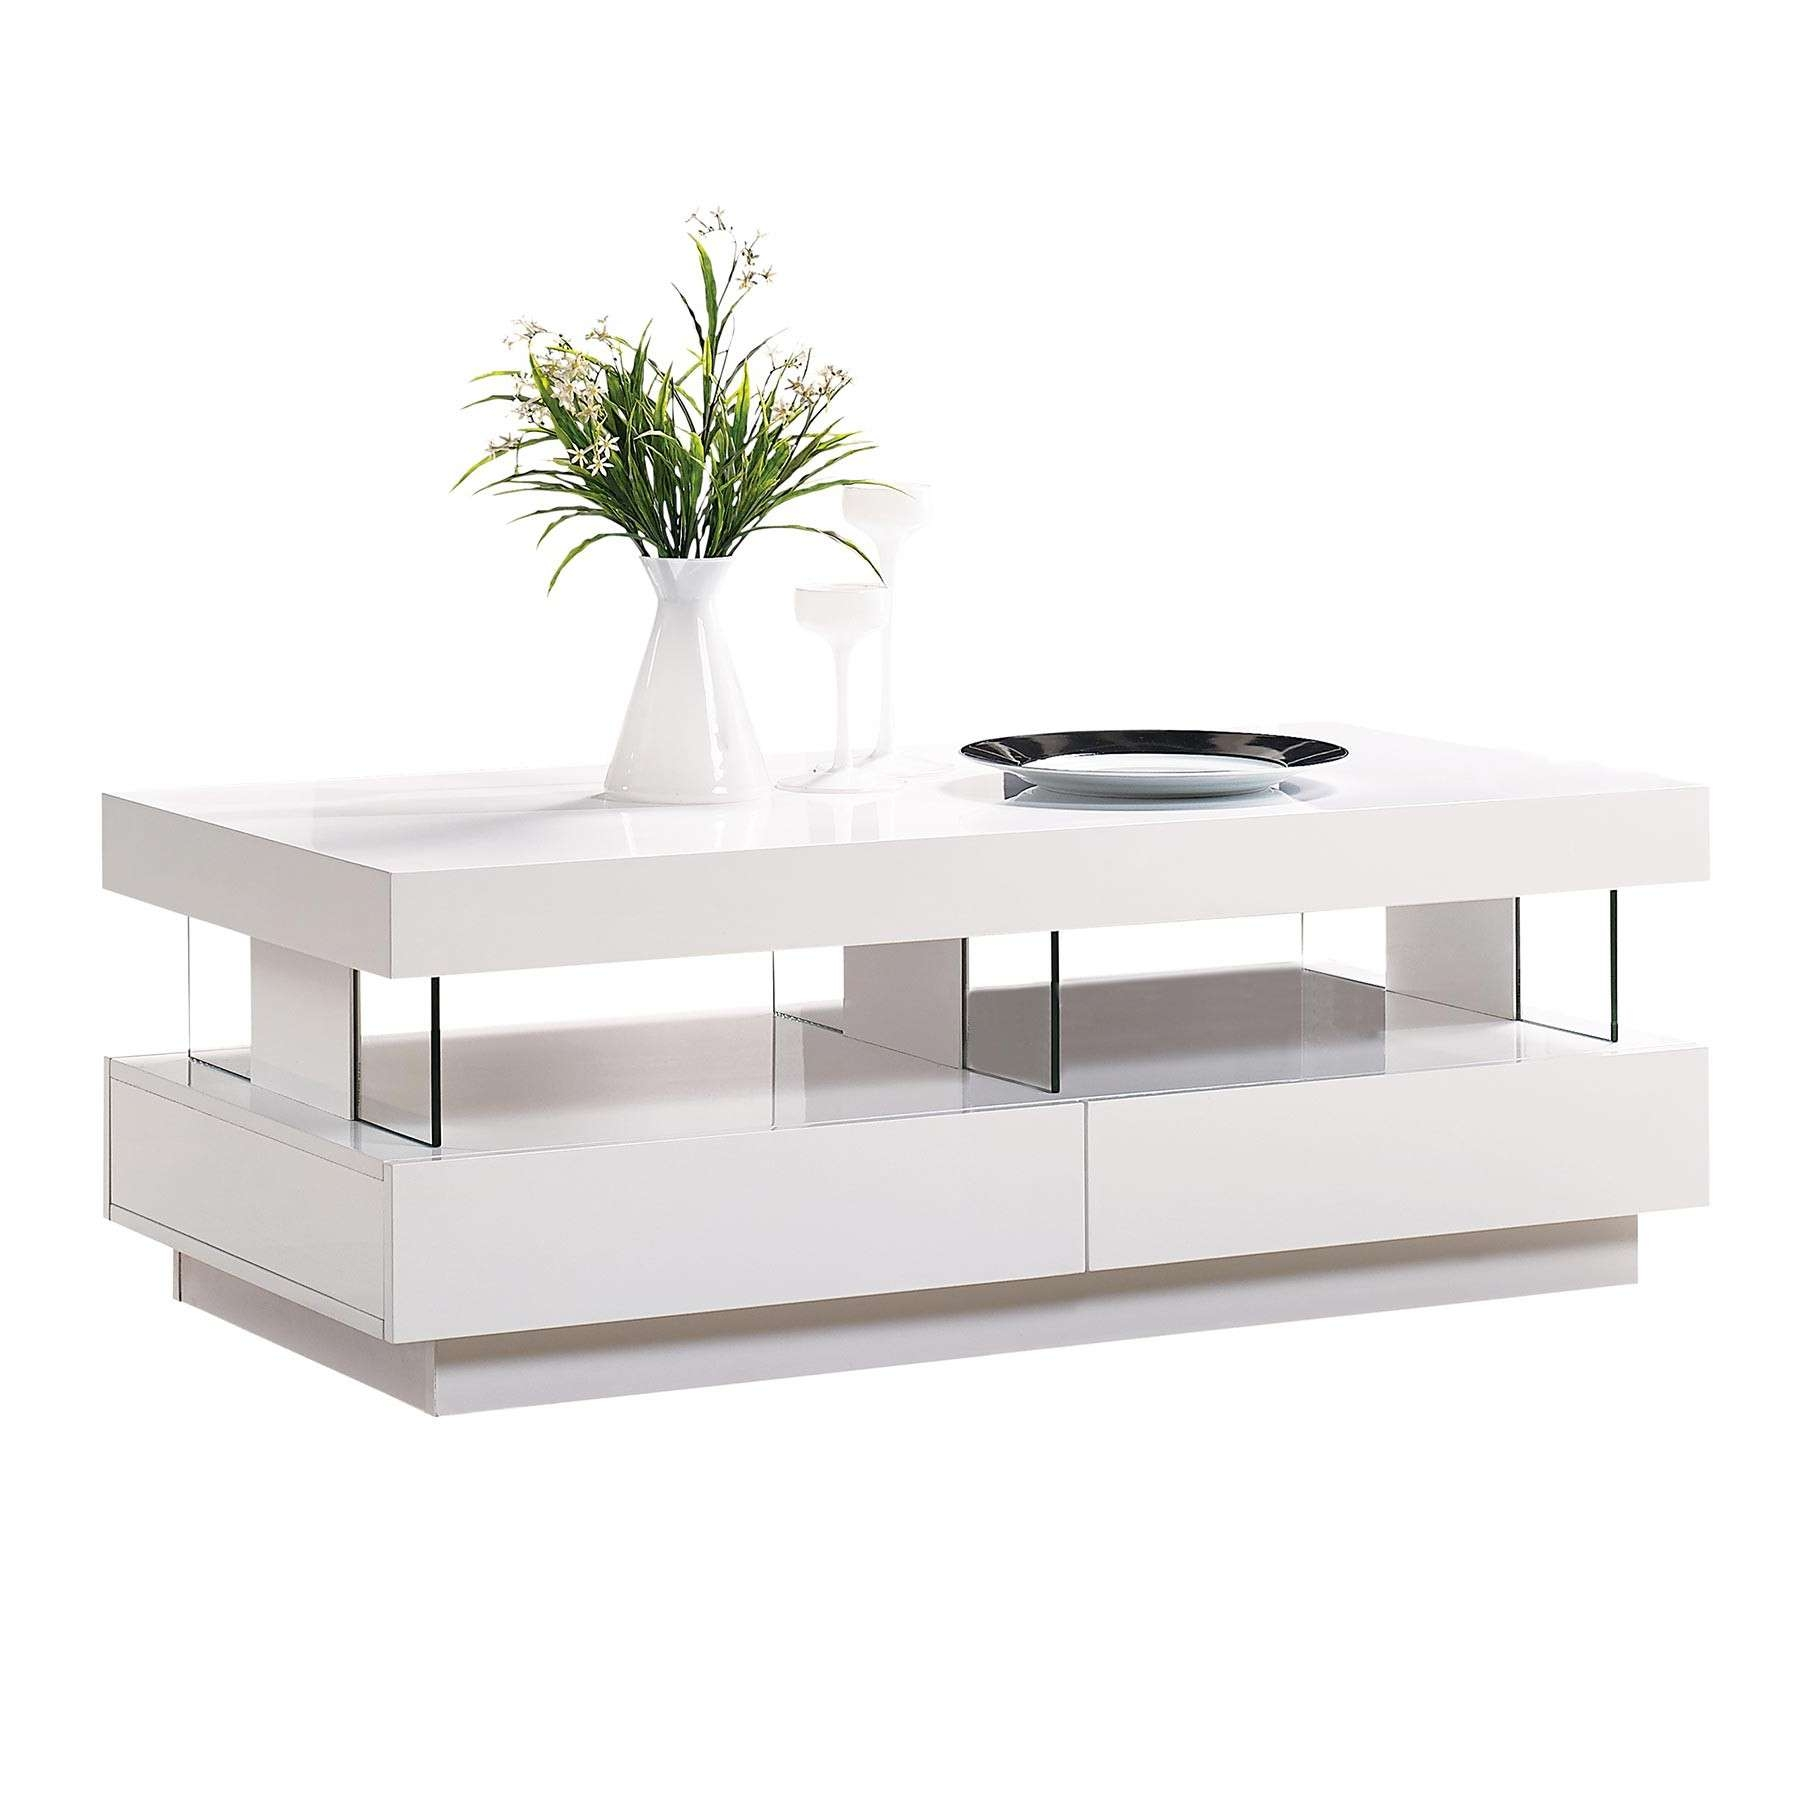 White Gloss Coffee Table Led Light (View 15 of 20)